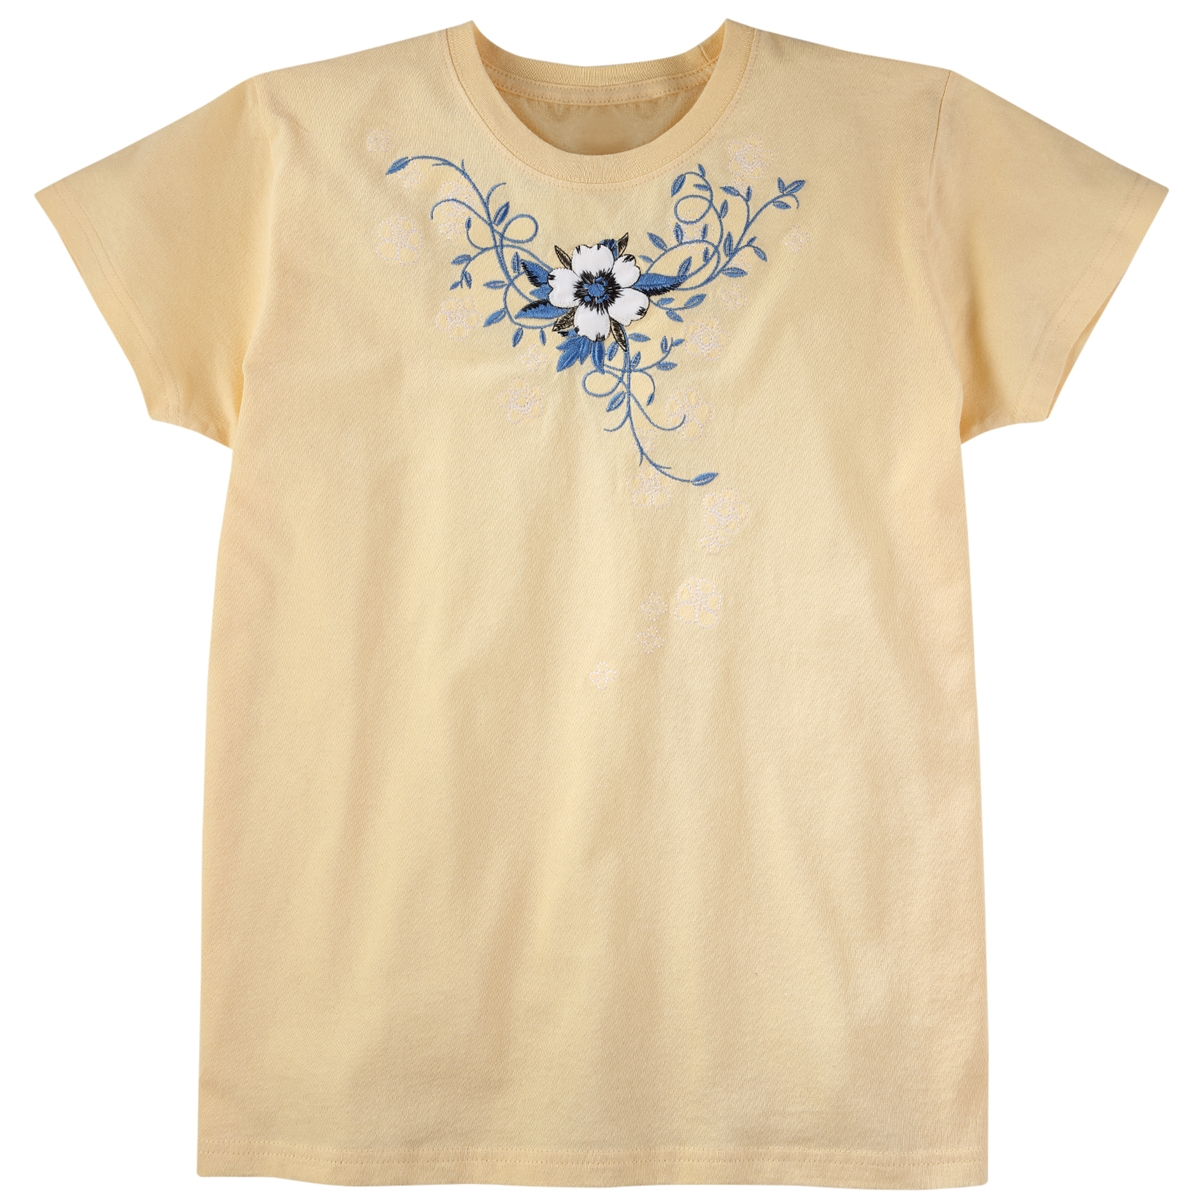 Stitched Falling Flower Tee